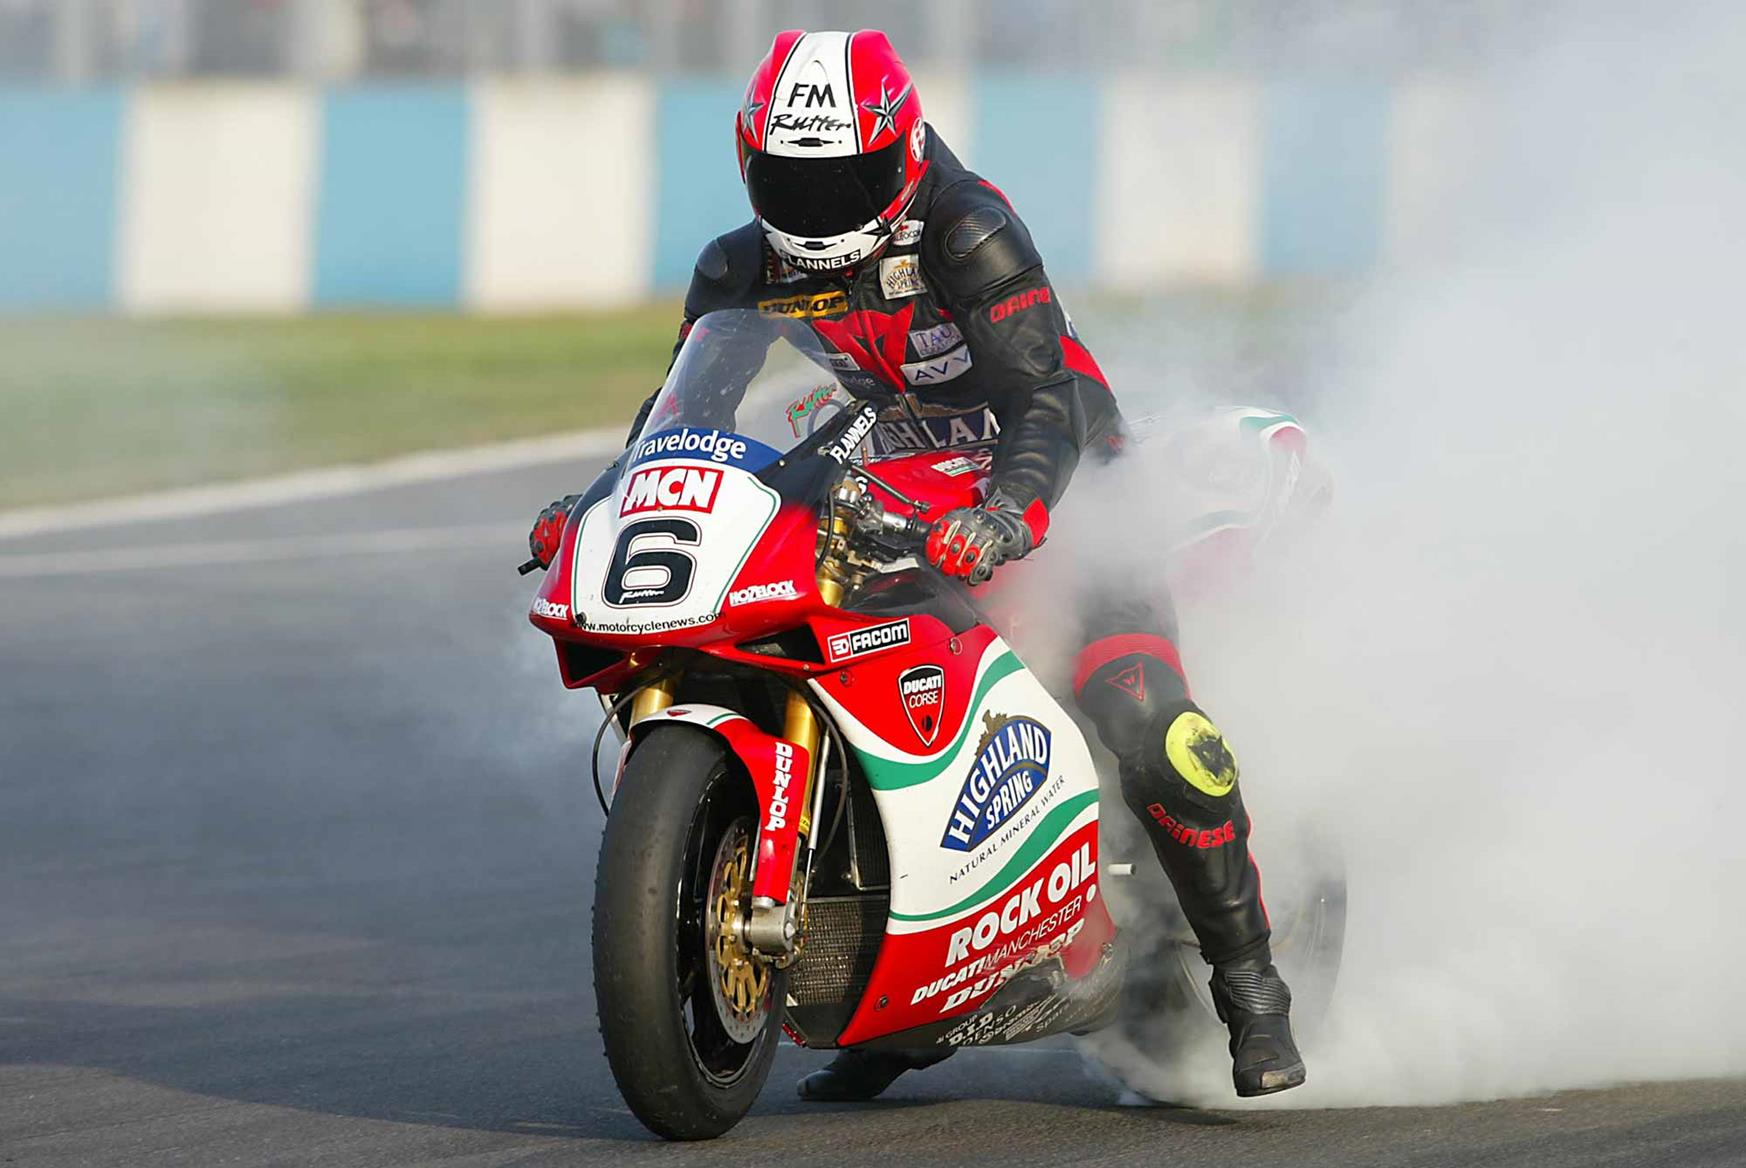 Michael Rutter has the most wins without a BSB title